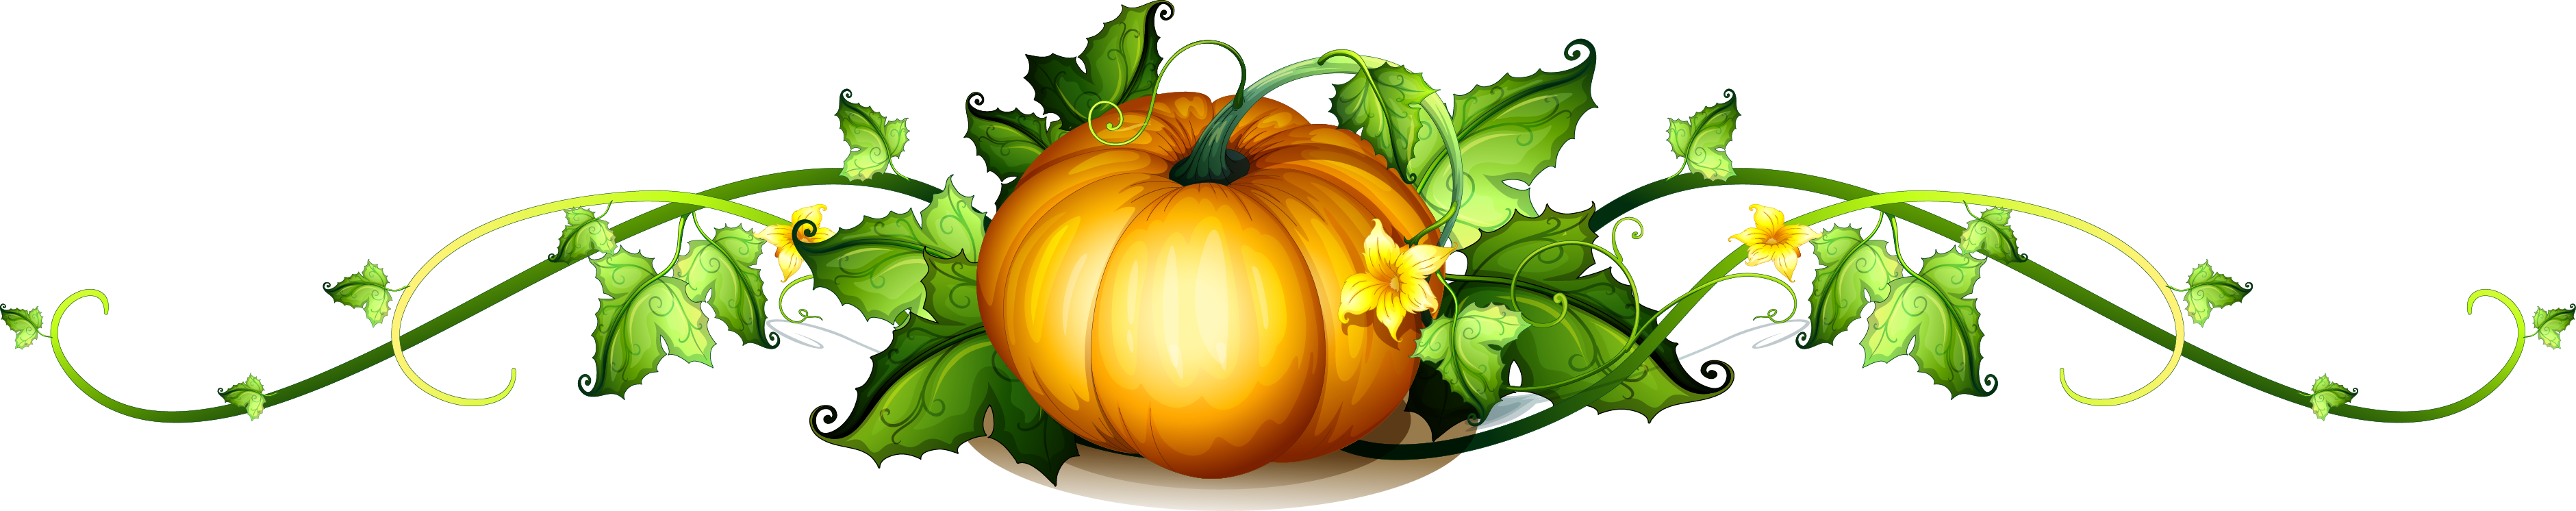 Pumpkin leave clipart clipart free Pumpkin Vine Royalty-free Clip art - pumpkin,vegetables,leaf 3762 ... clipart free